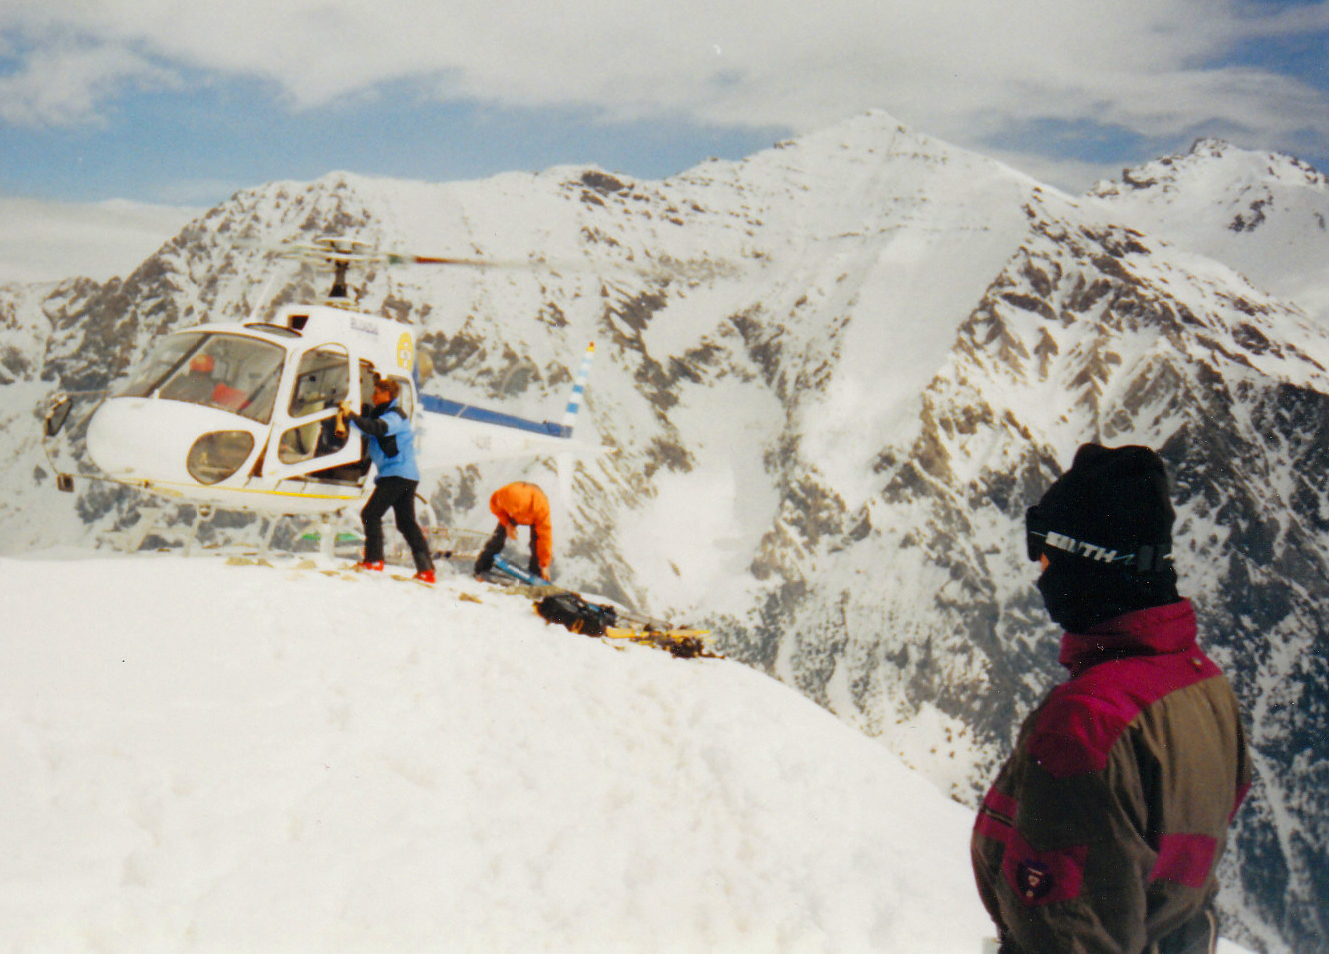 Heli is a possibility in Sestriere for the experts.